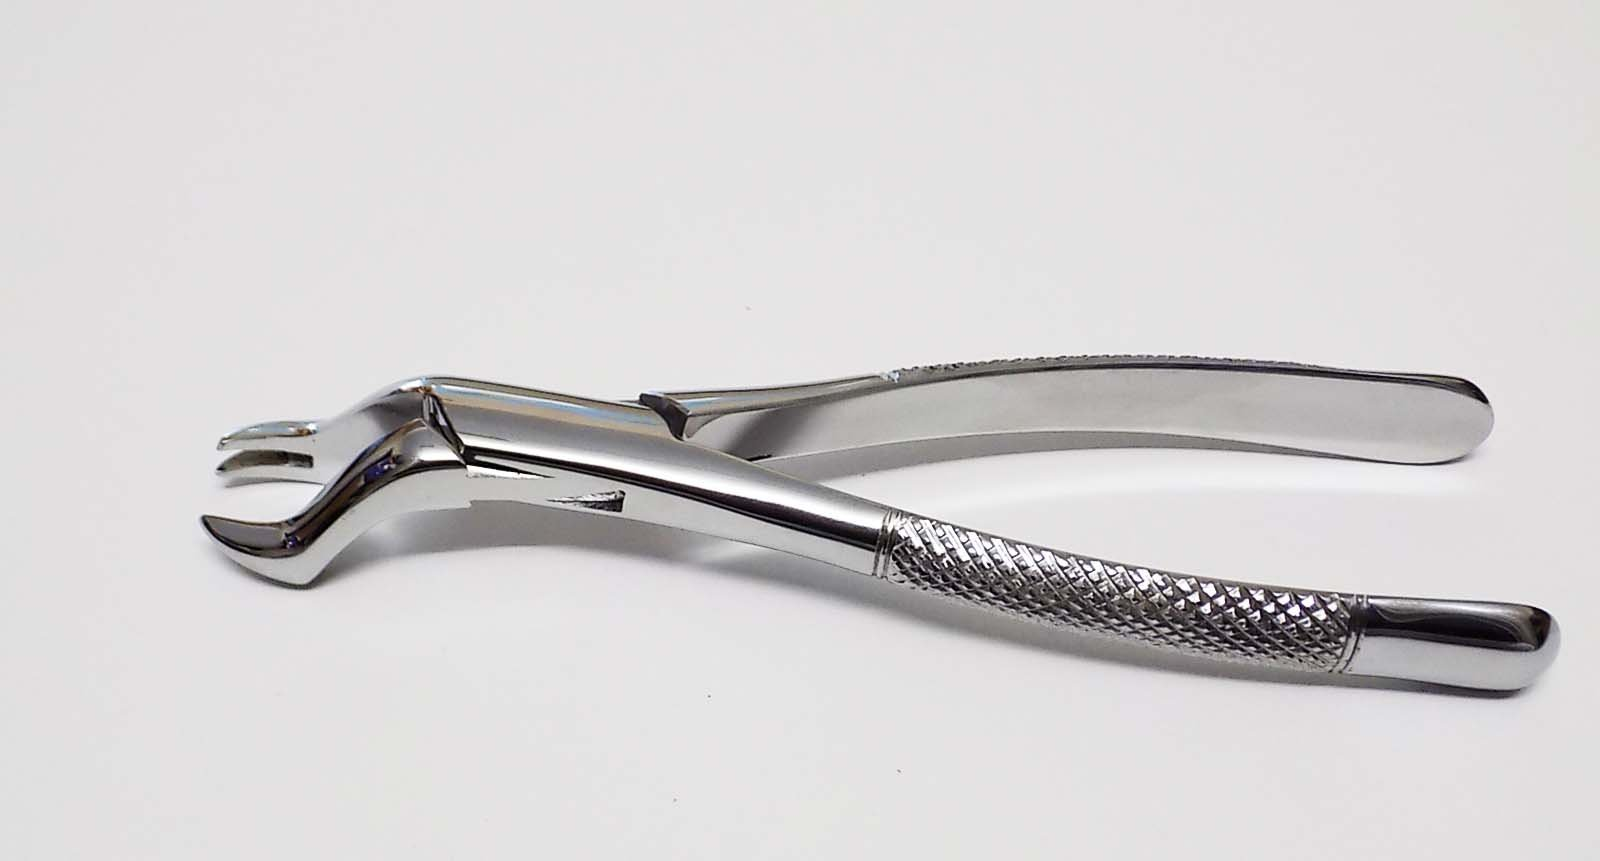 Extracting forceps upper 1st and 2nd molar-left surgical Forceps # 88 R, Tasrou Brand